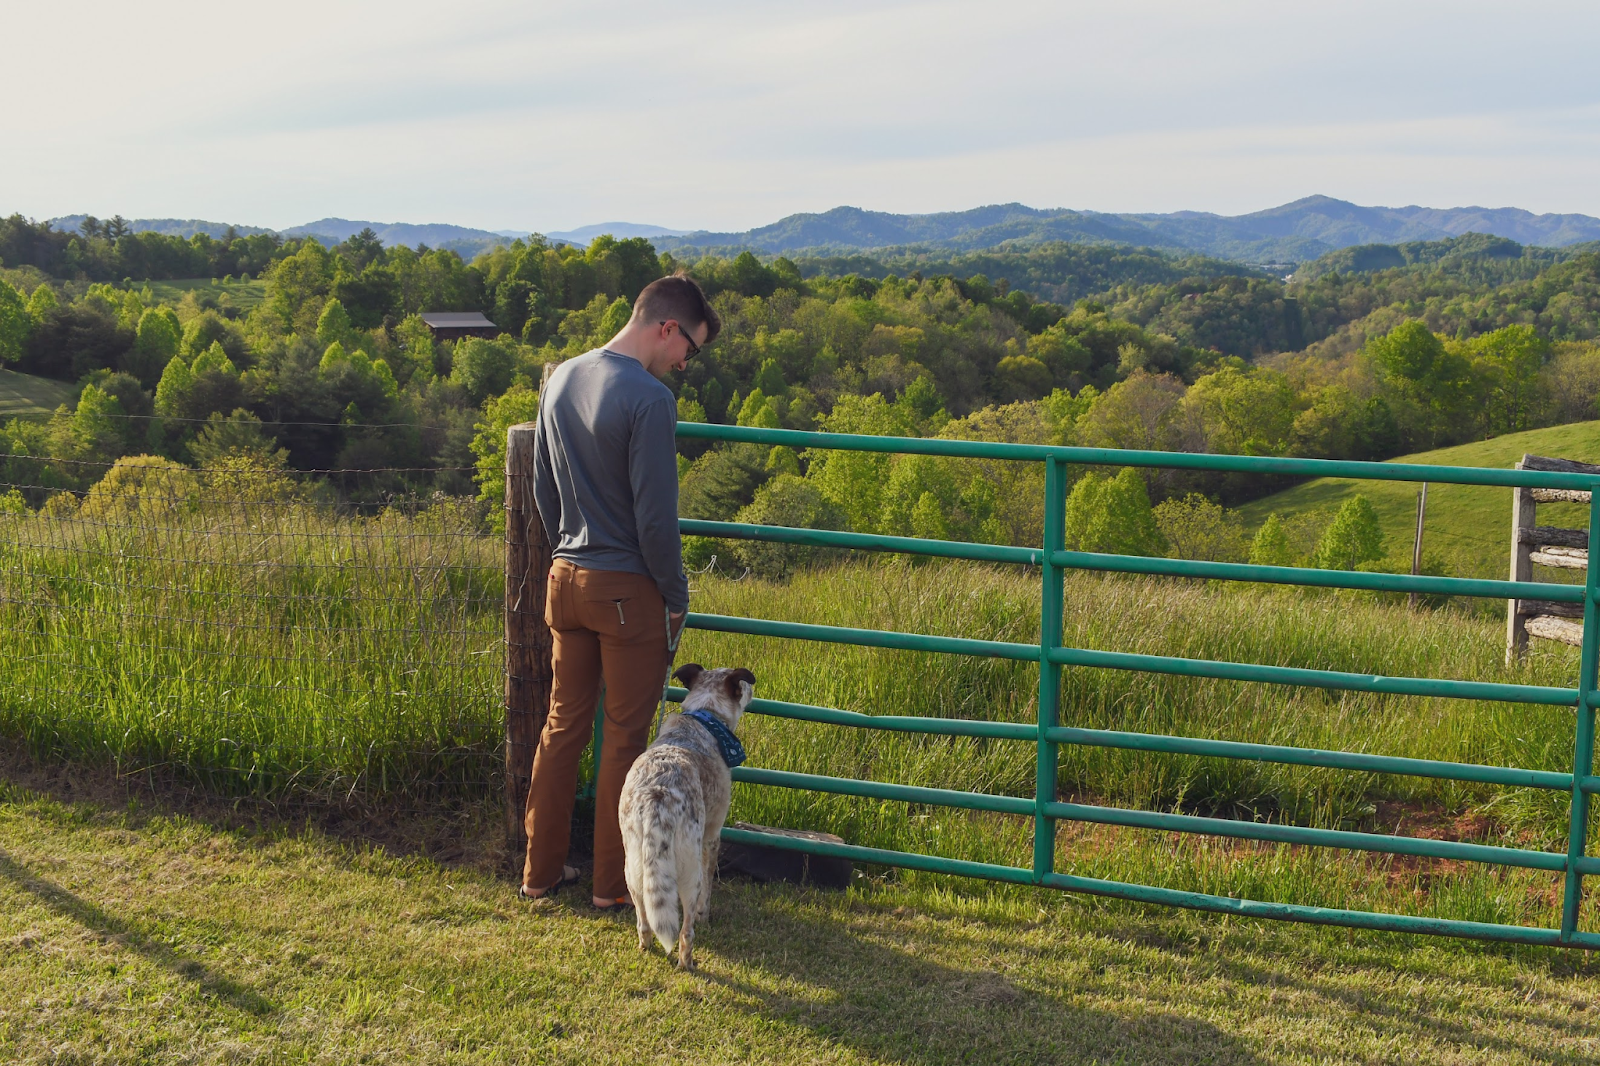 Travis and his dog standing by a green fence overlooking hills.